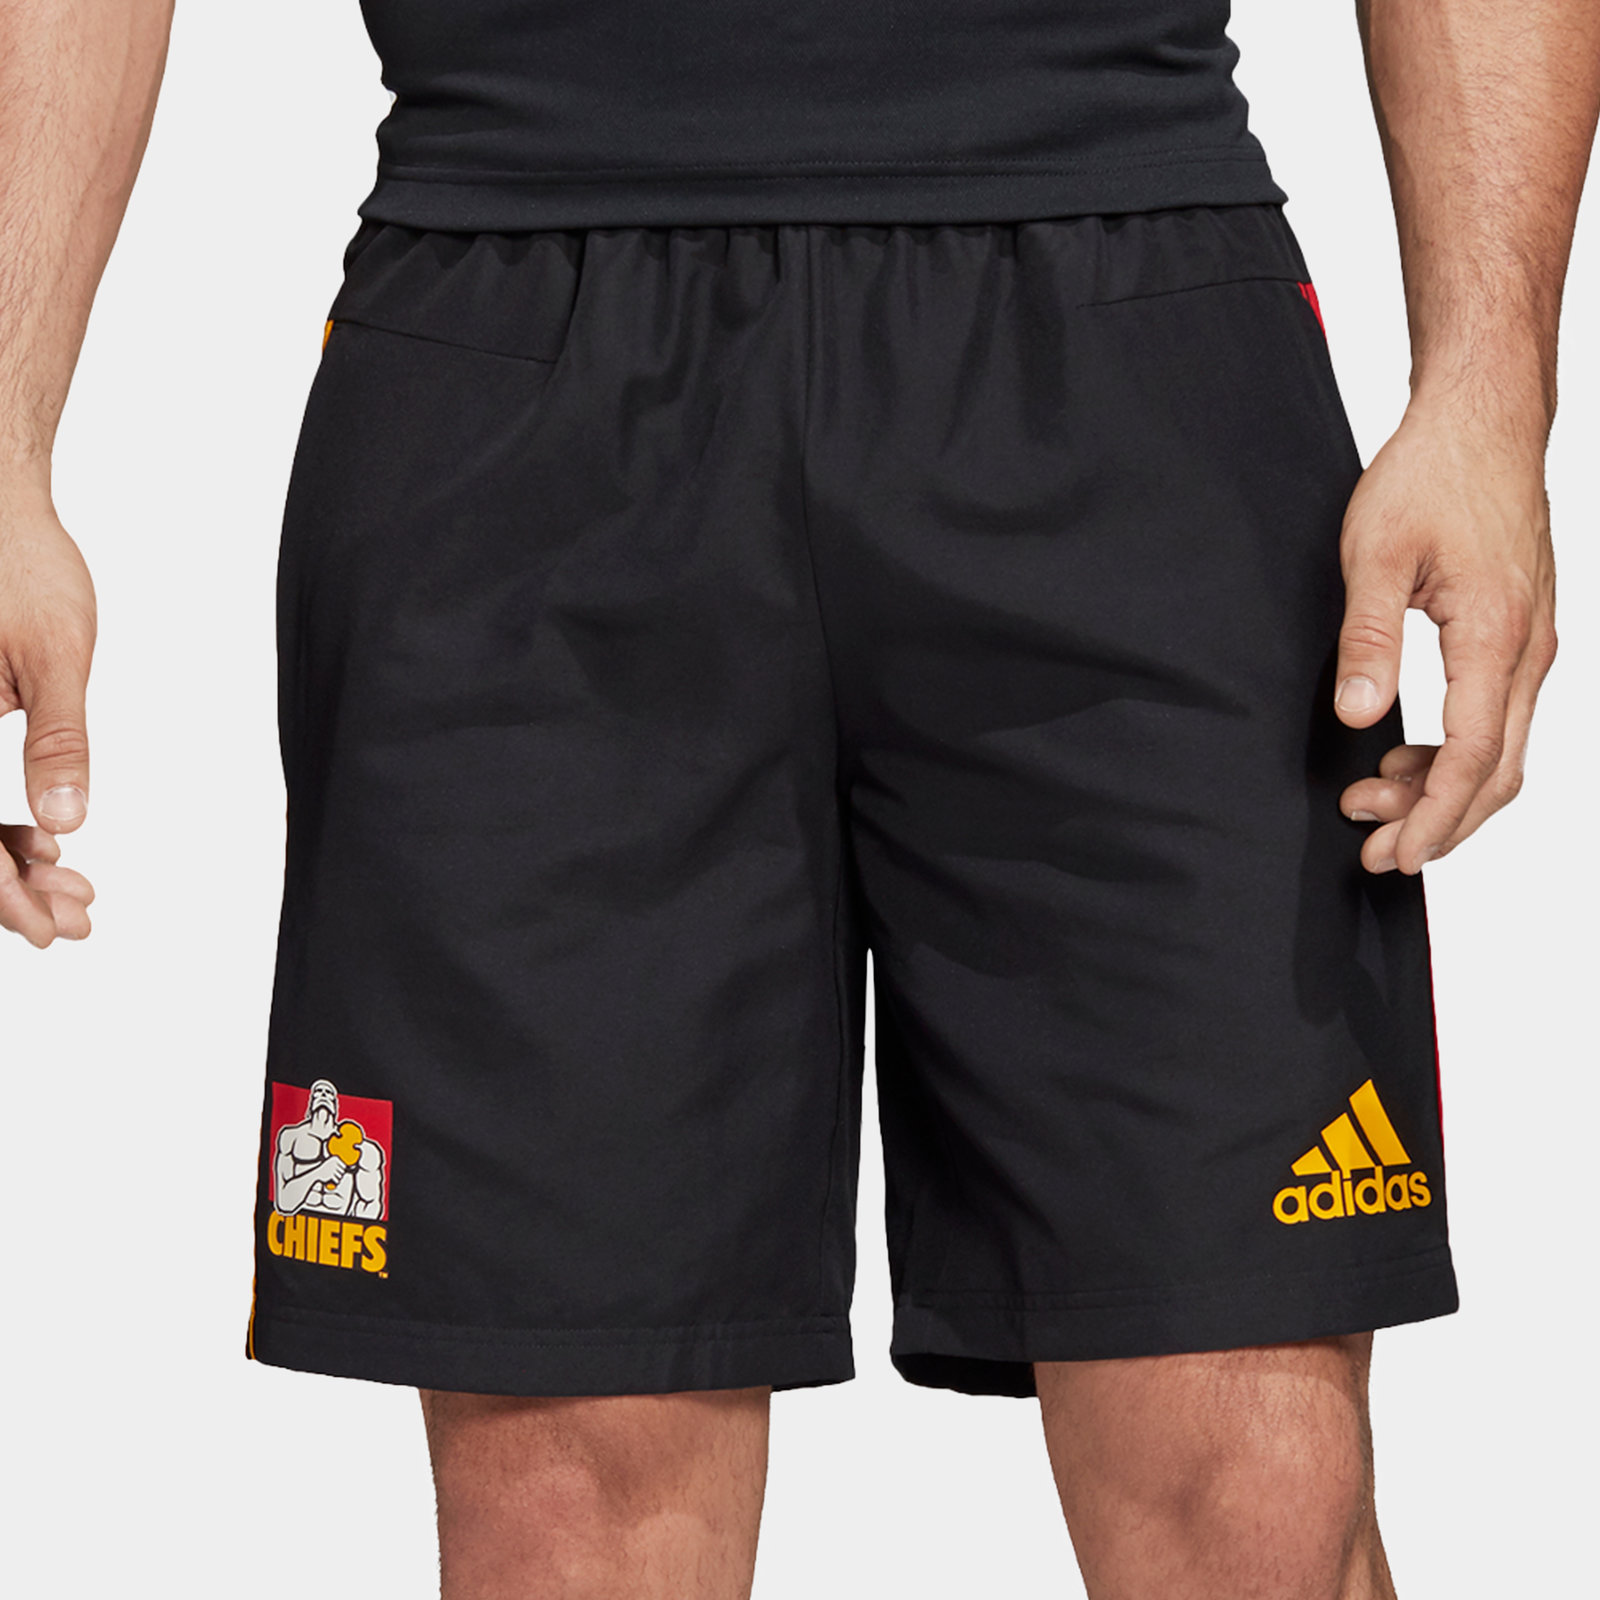 Chiefs 2020 Home Super Shorts